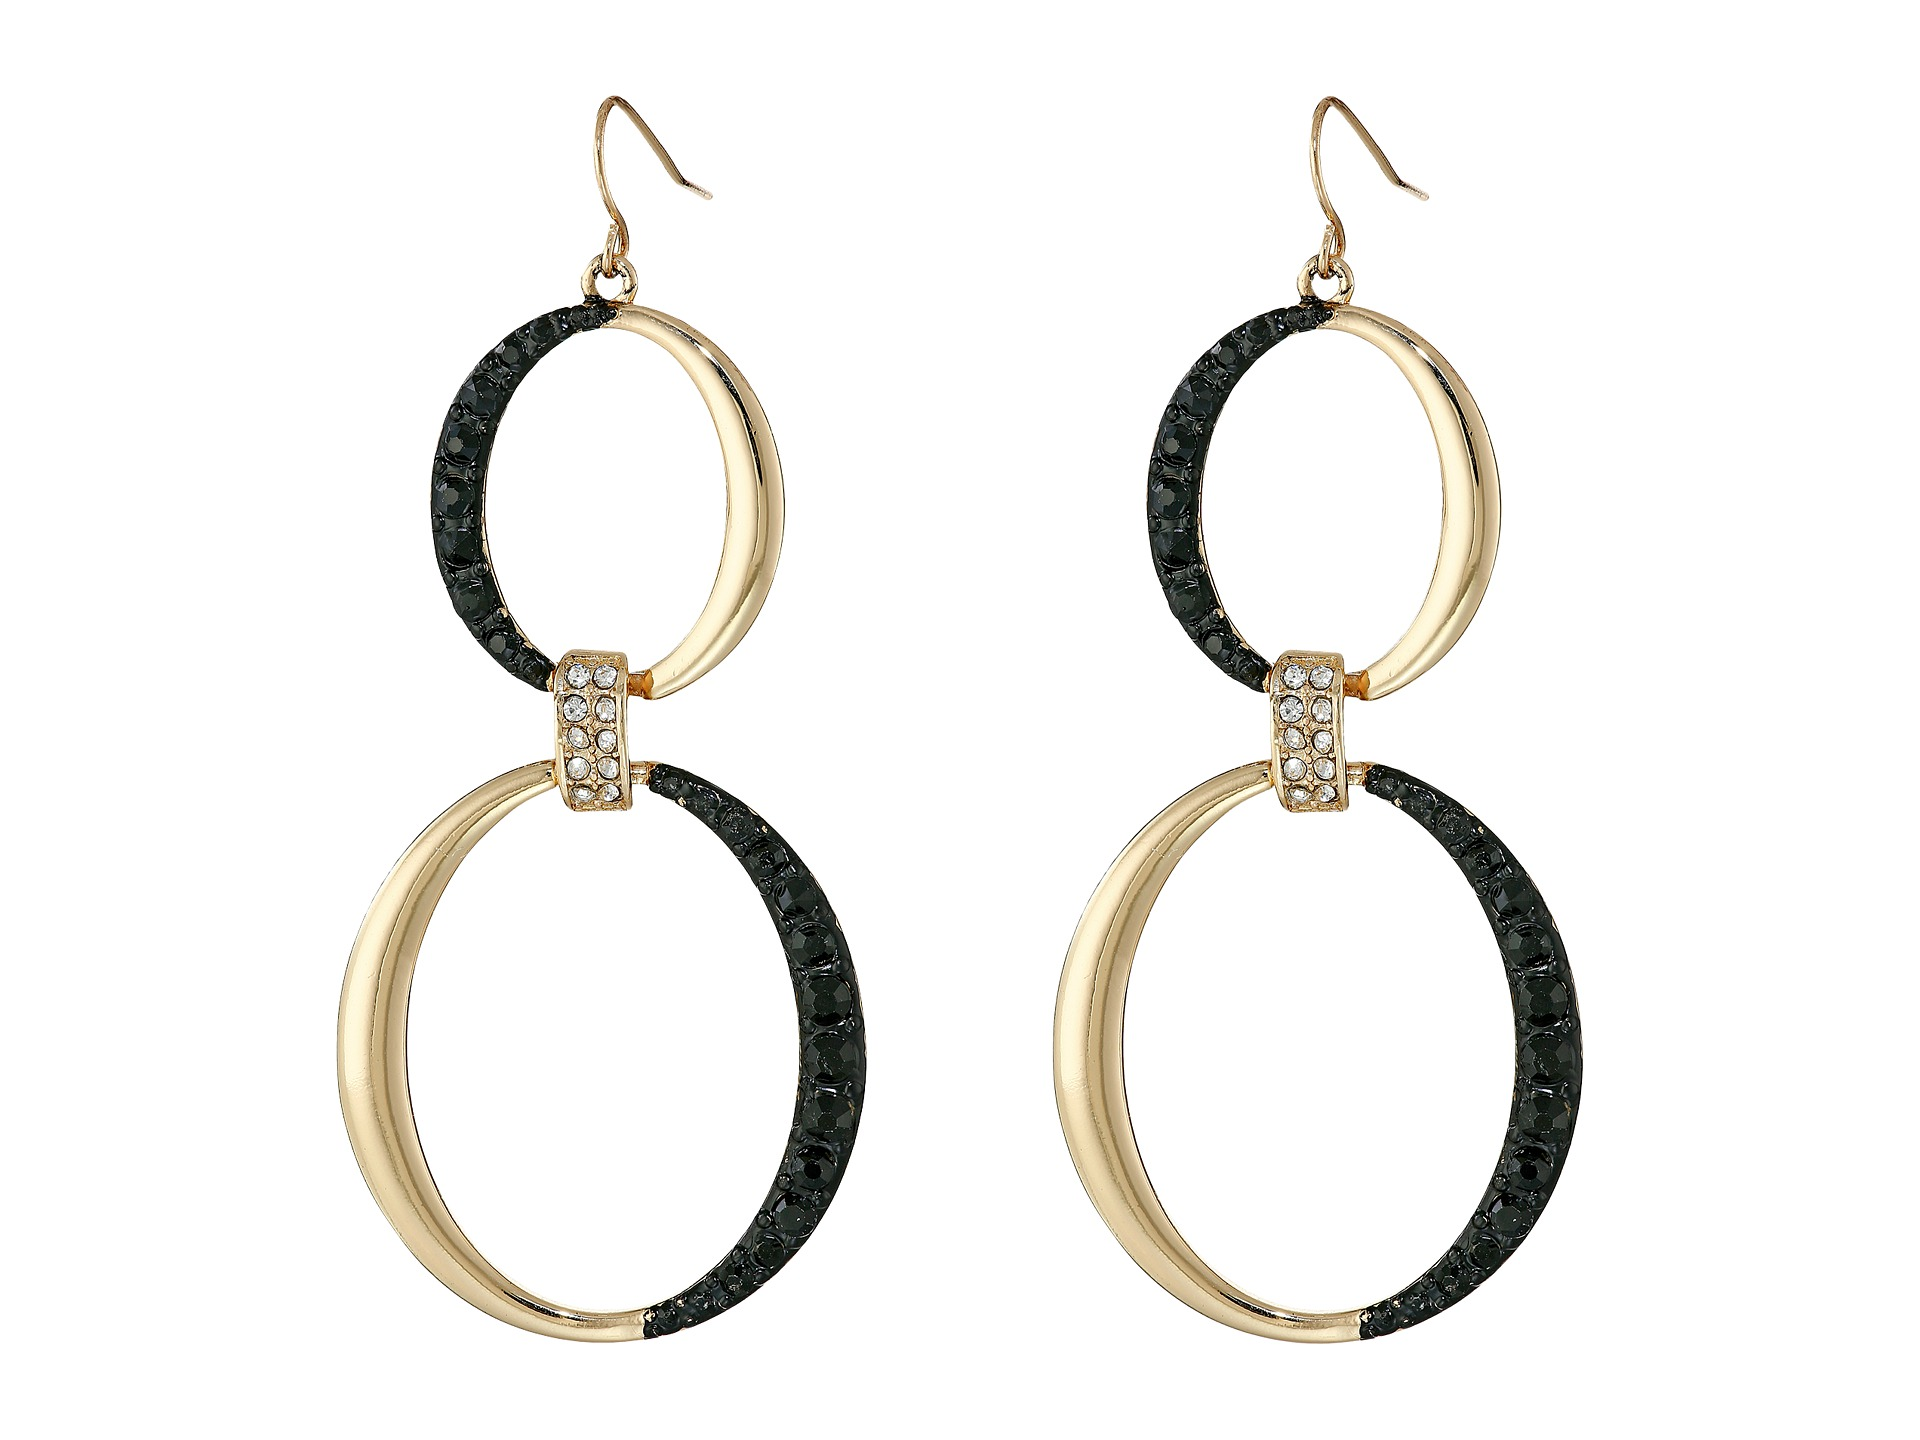 guess rings on wire earrings